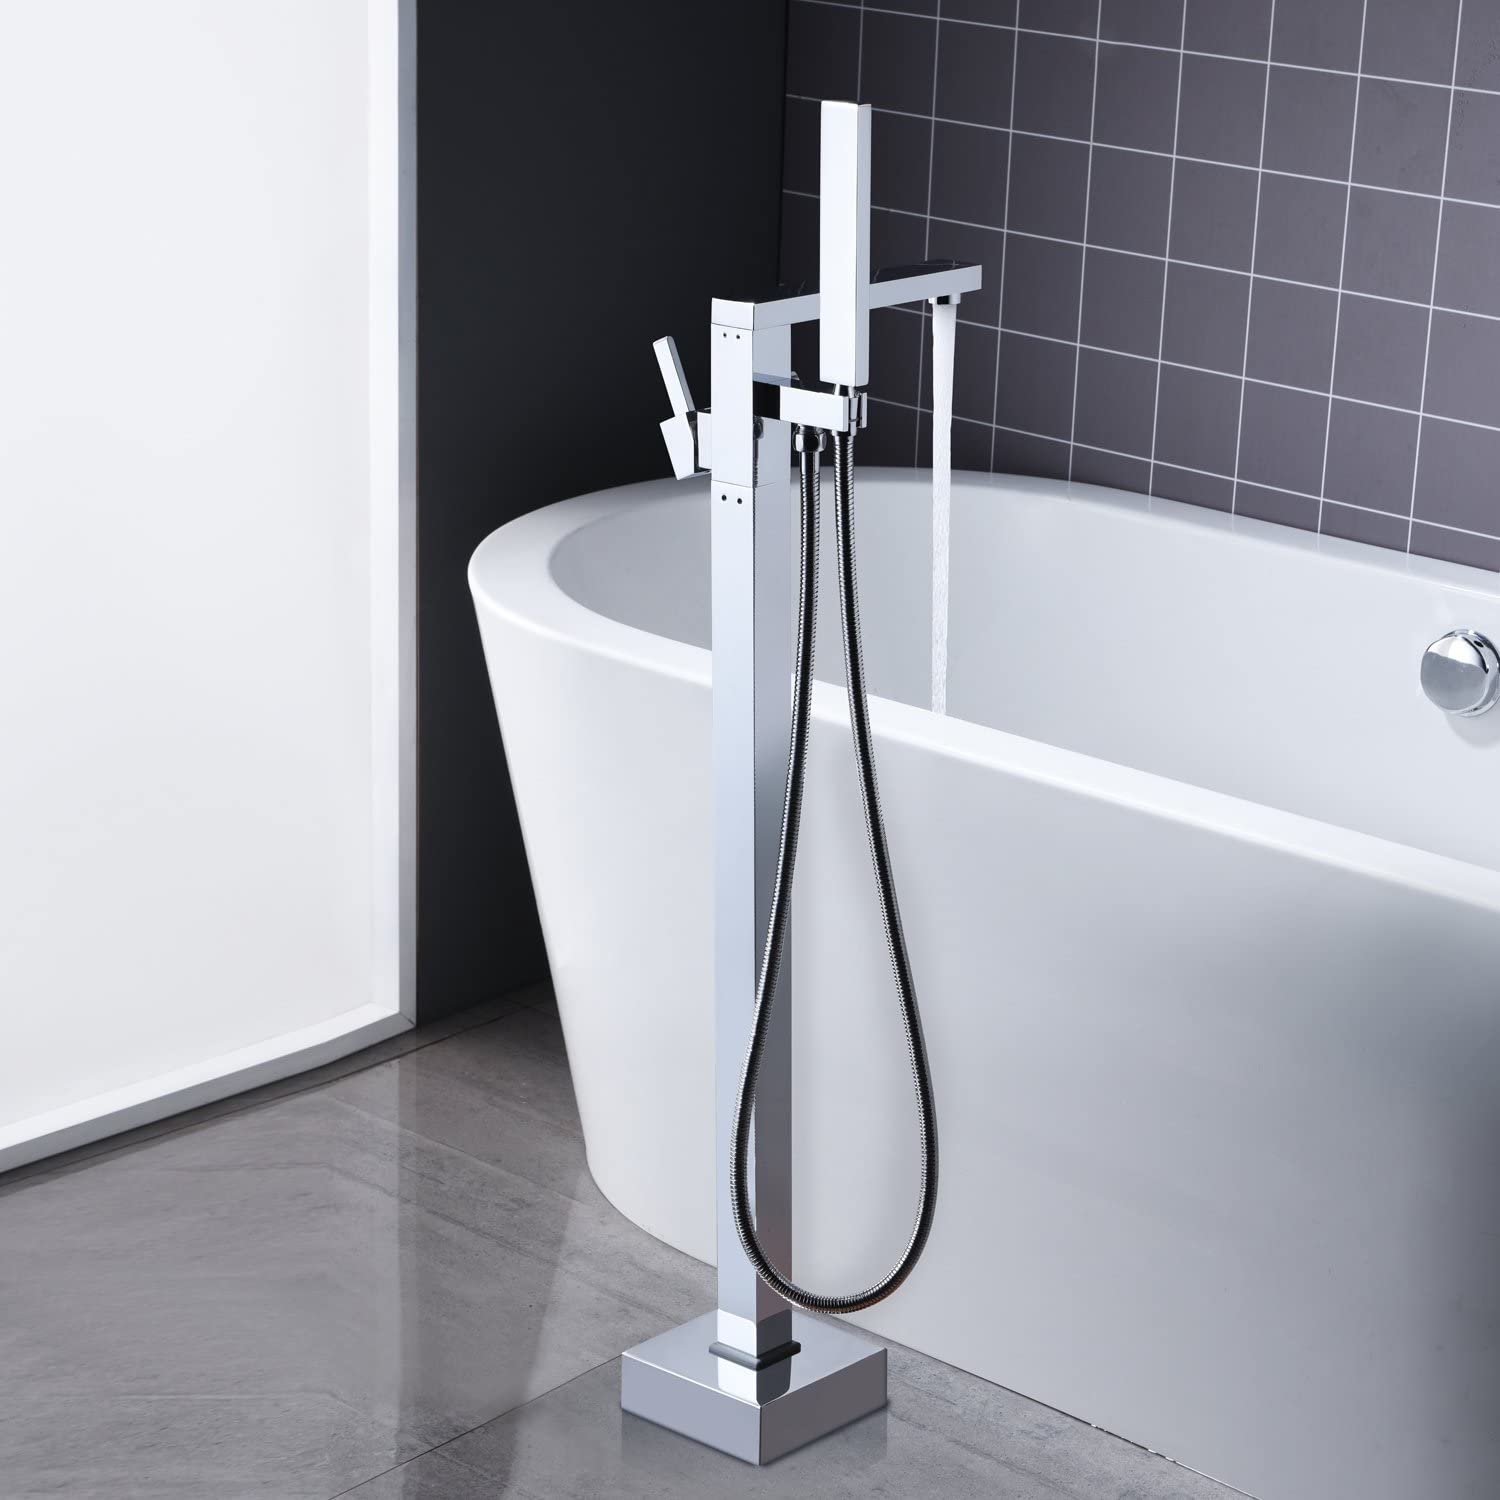 Arputhy Freestanding Bath Mixer Tap Bathroom Taps Chrome Brass Floor Mounted Filler Faucet with Handheld Shower